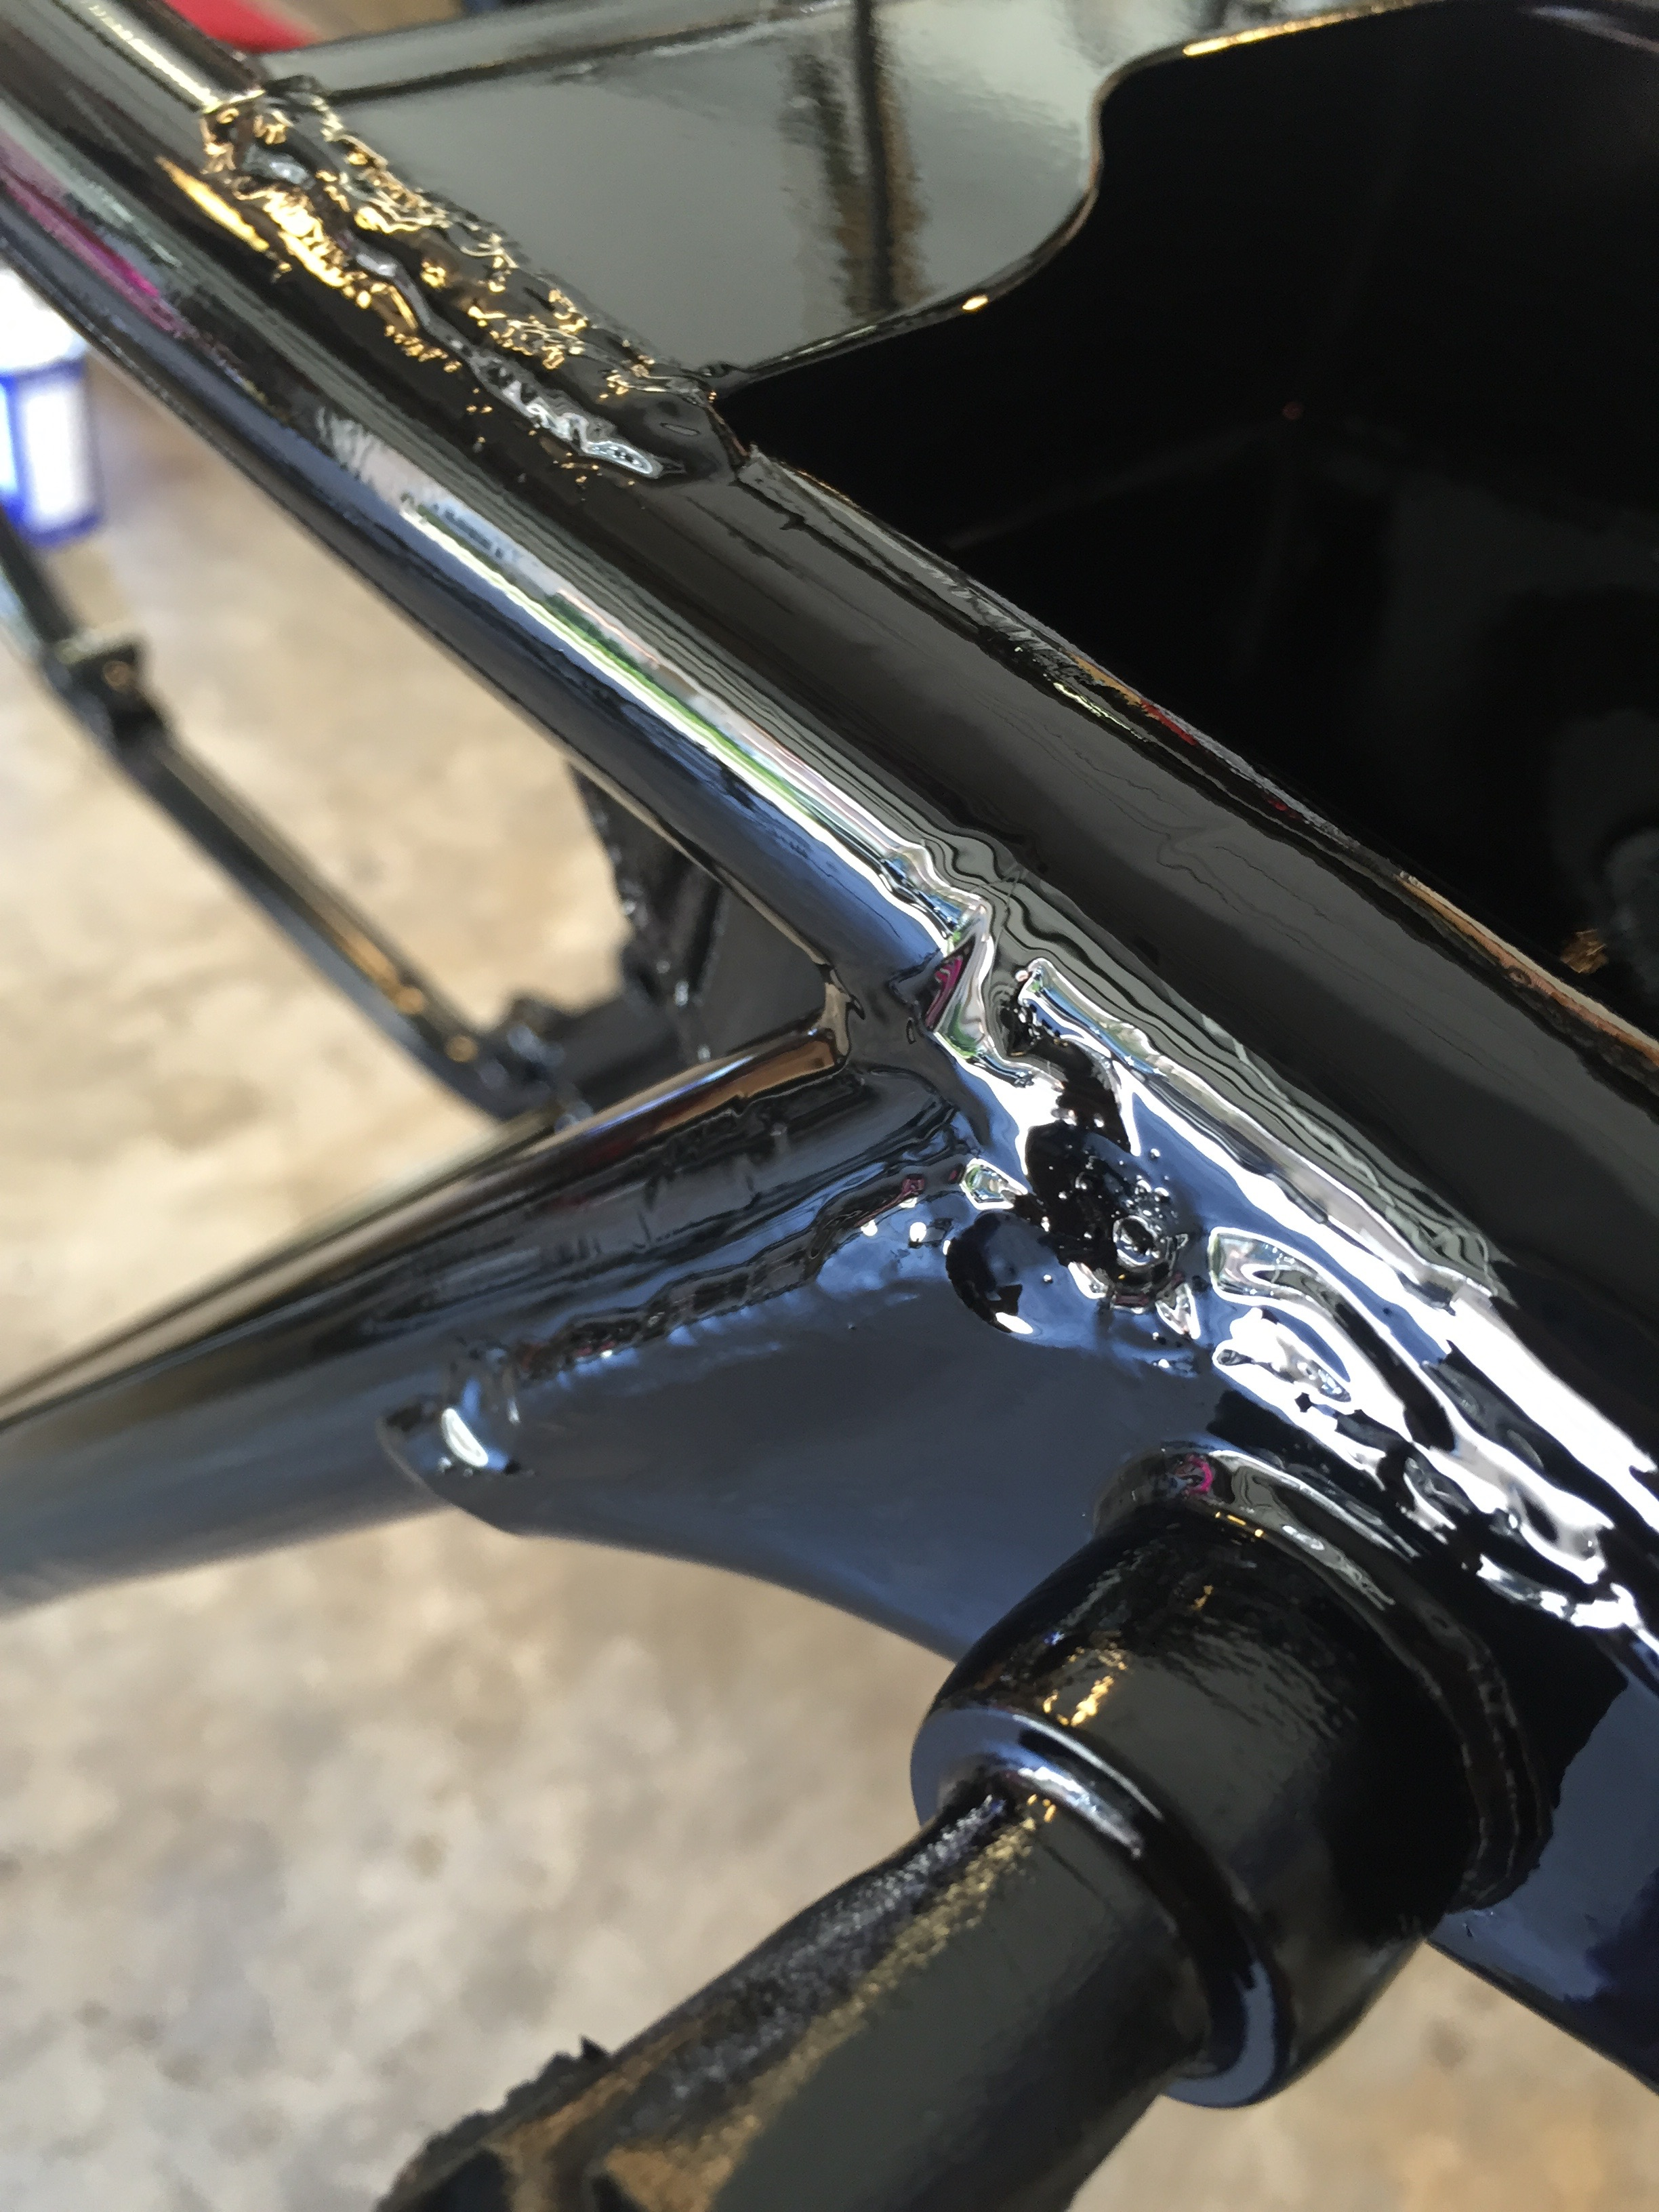 This frame was coated days ago and still looks wet. I'm super pleased with this new product.